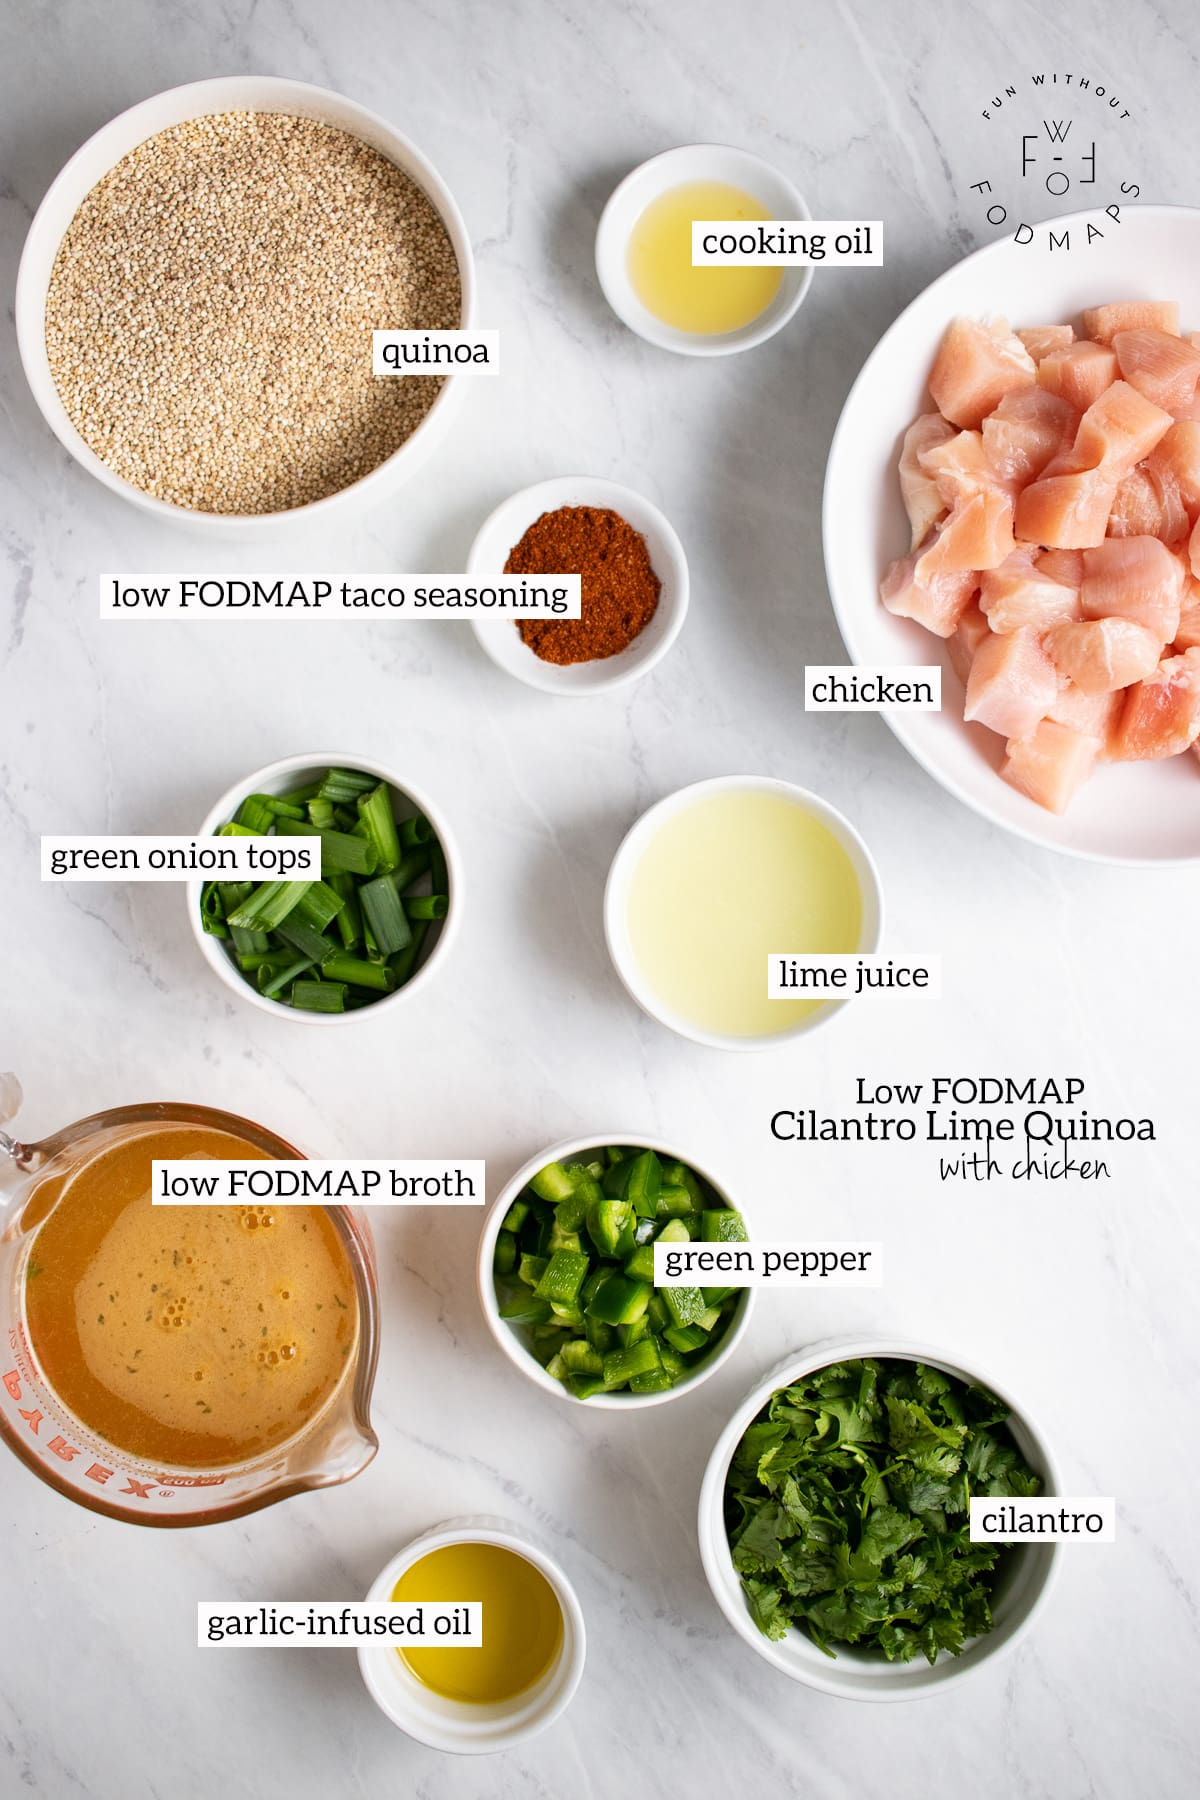 Ingredients needed for Low FODMAP Cilantro Lime Quinoa with Chicken